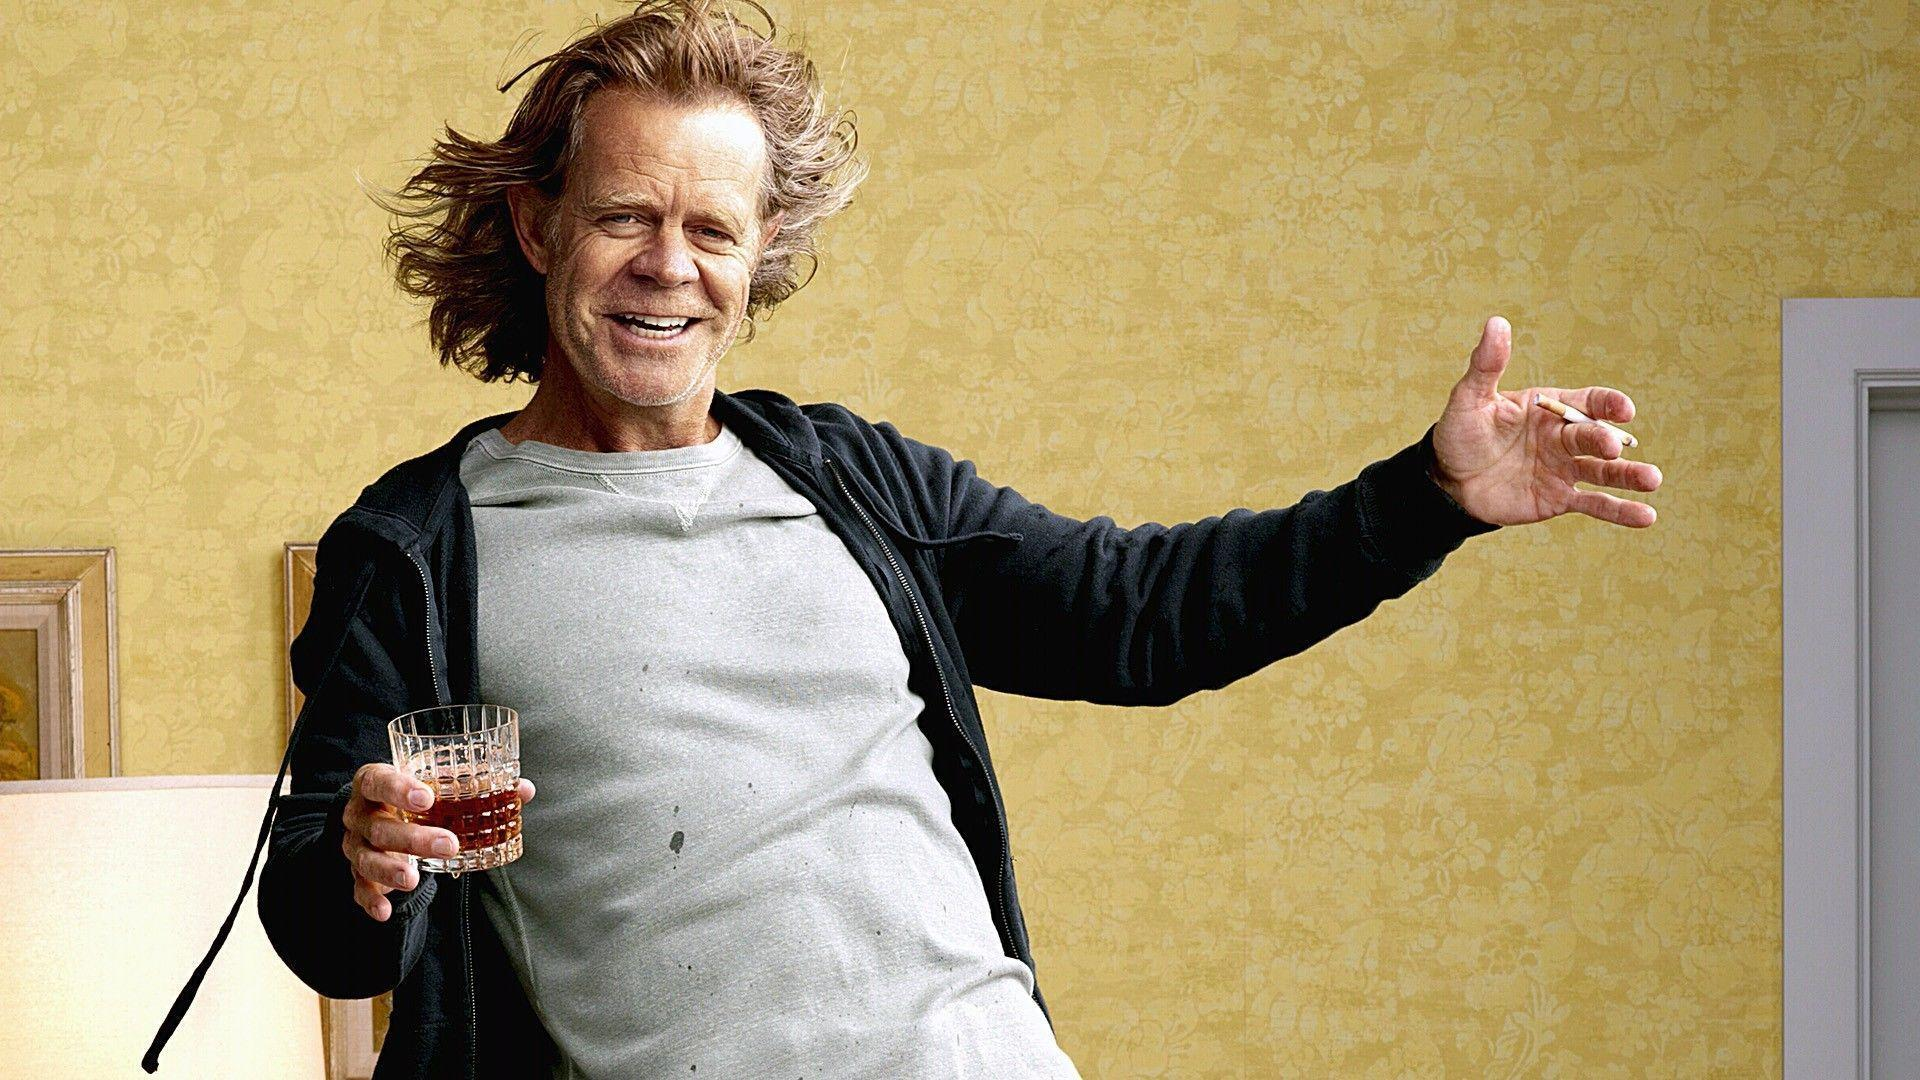 Shameless, William H Macy Wallpapers HD / Desktop and Mobile ...